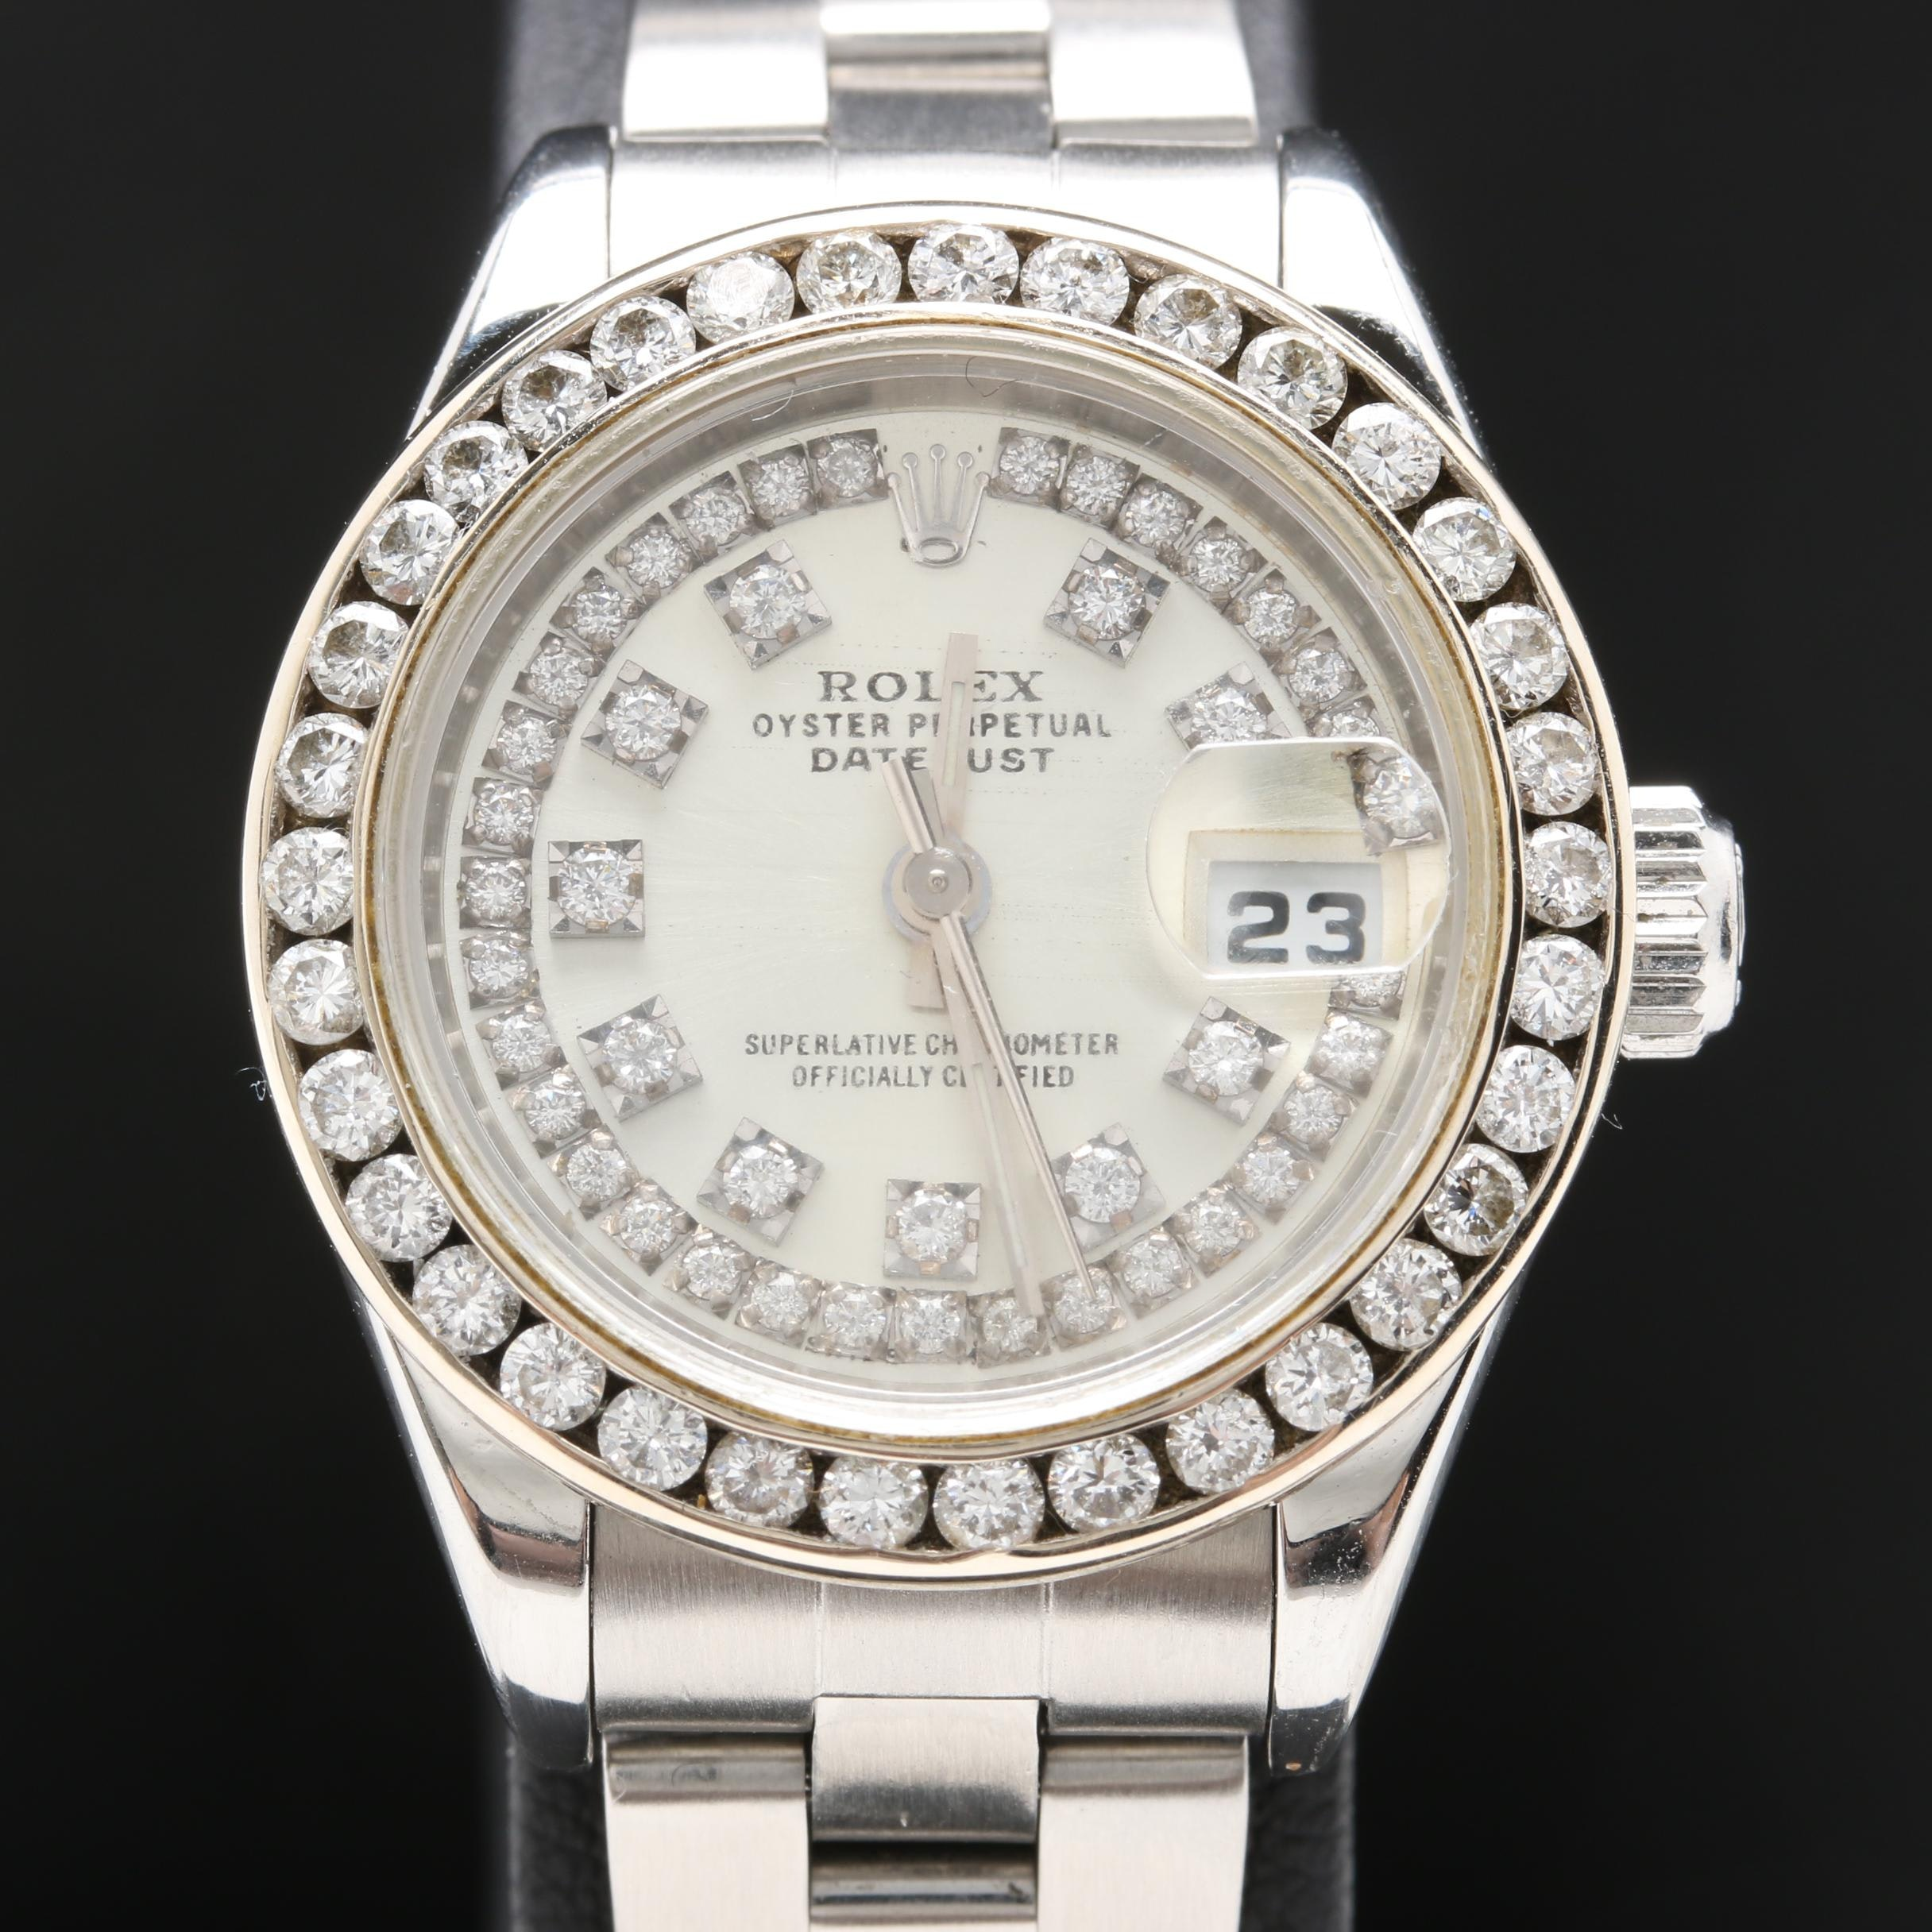 Rolex Stainless Steel 1.63 CTW Diamond Wristwatch With Date Window